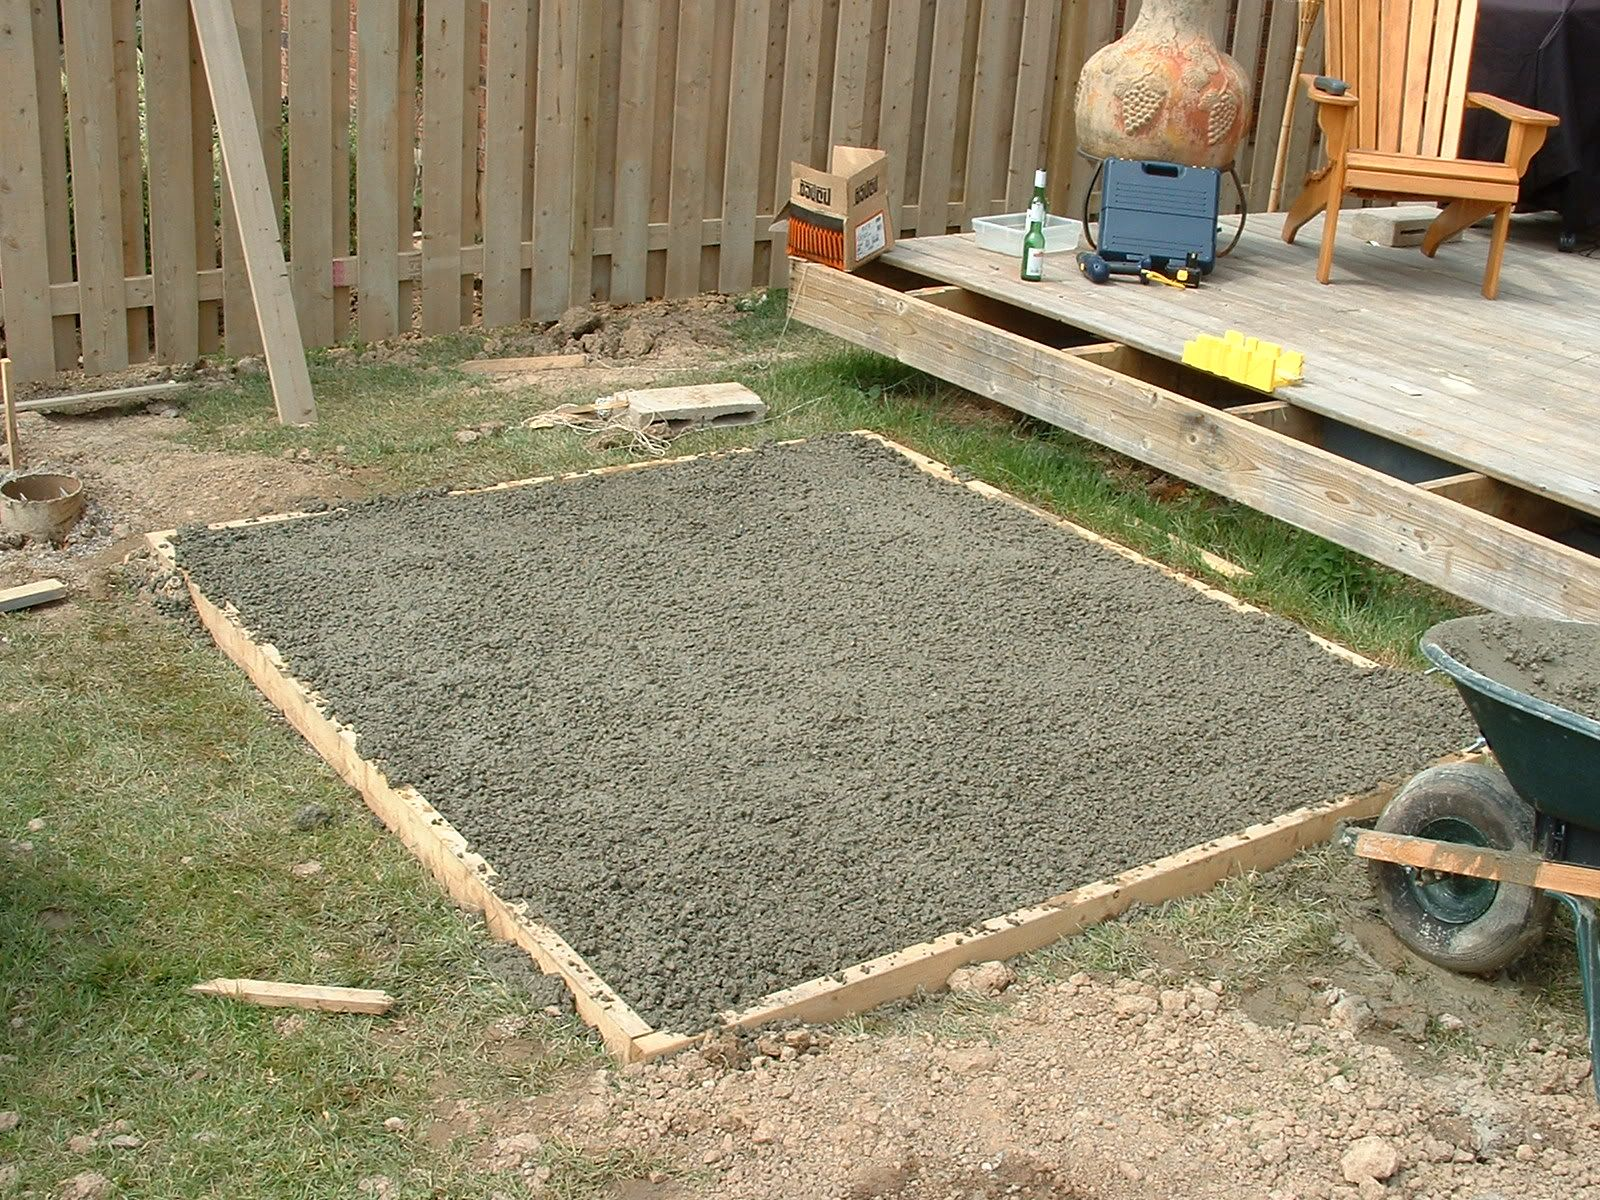 Patio ideas with hot tub - Tips For Creating A Custom Hot Tub Pad